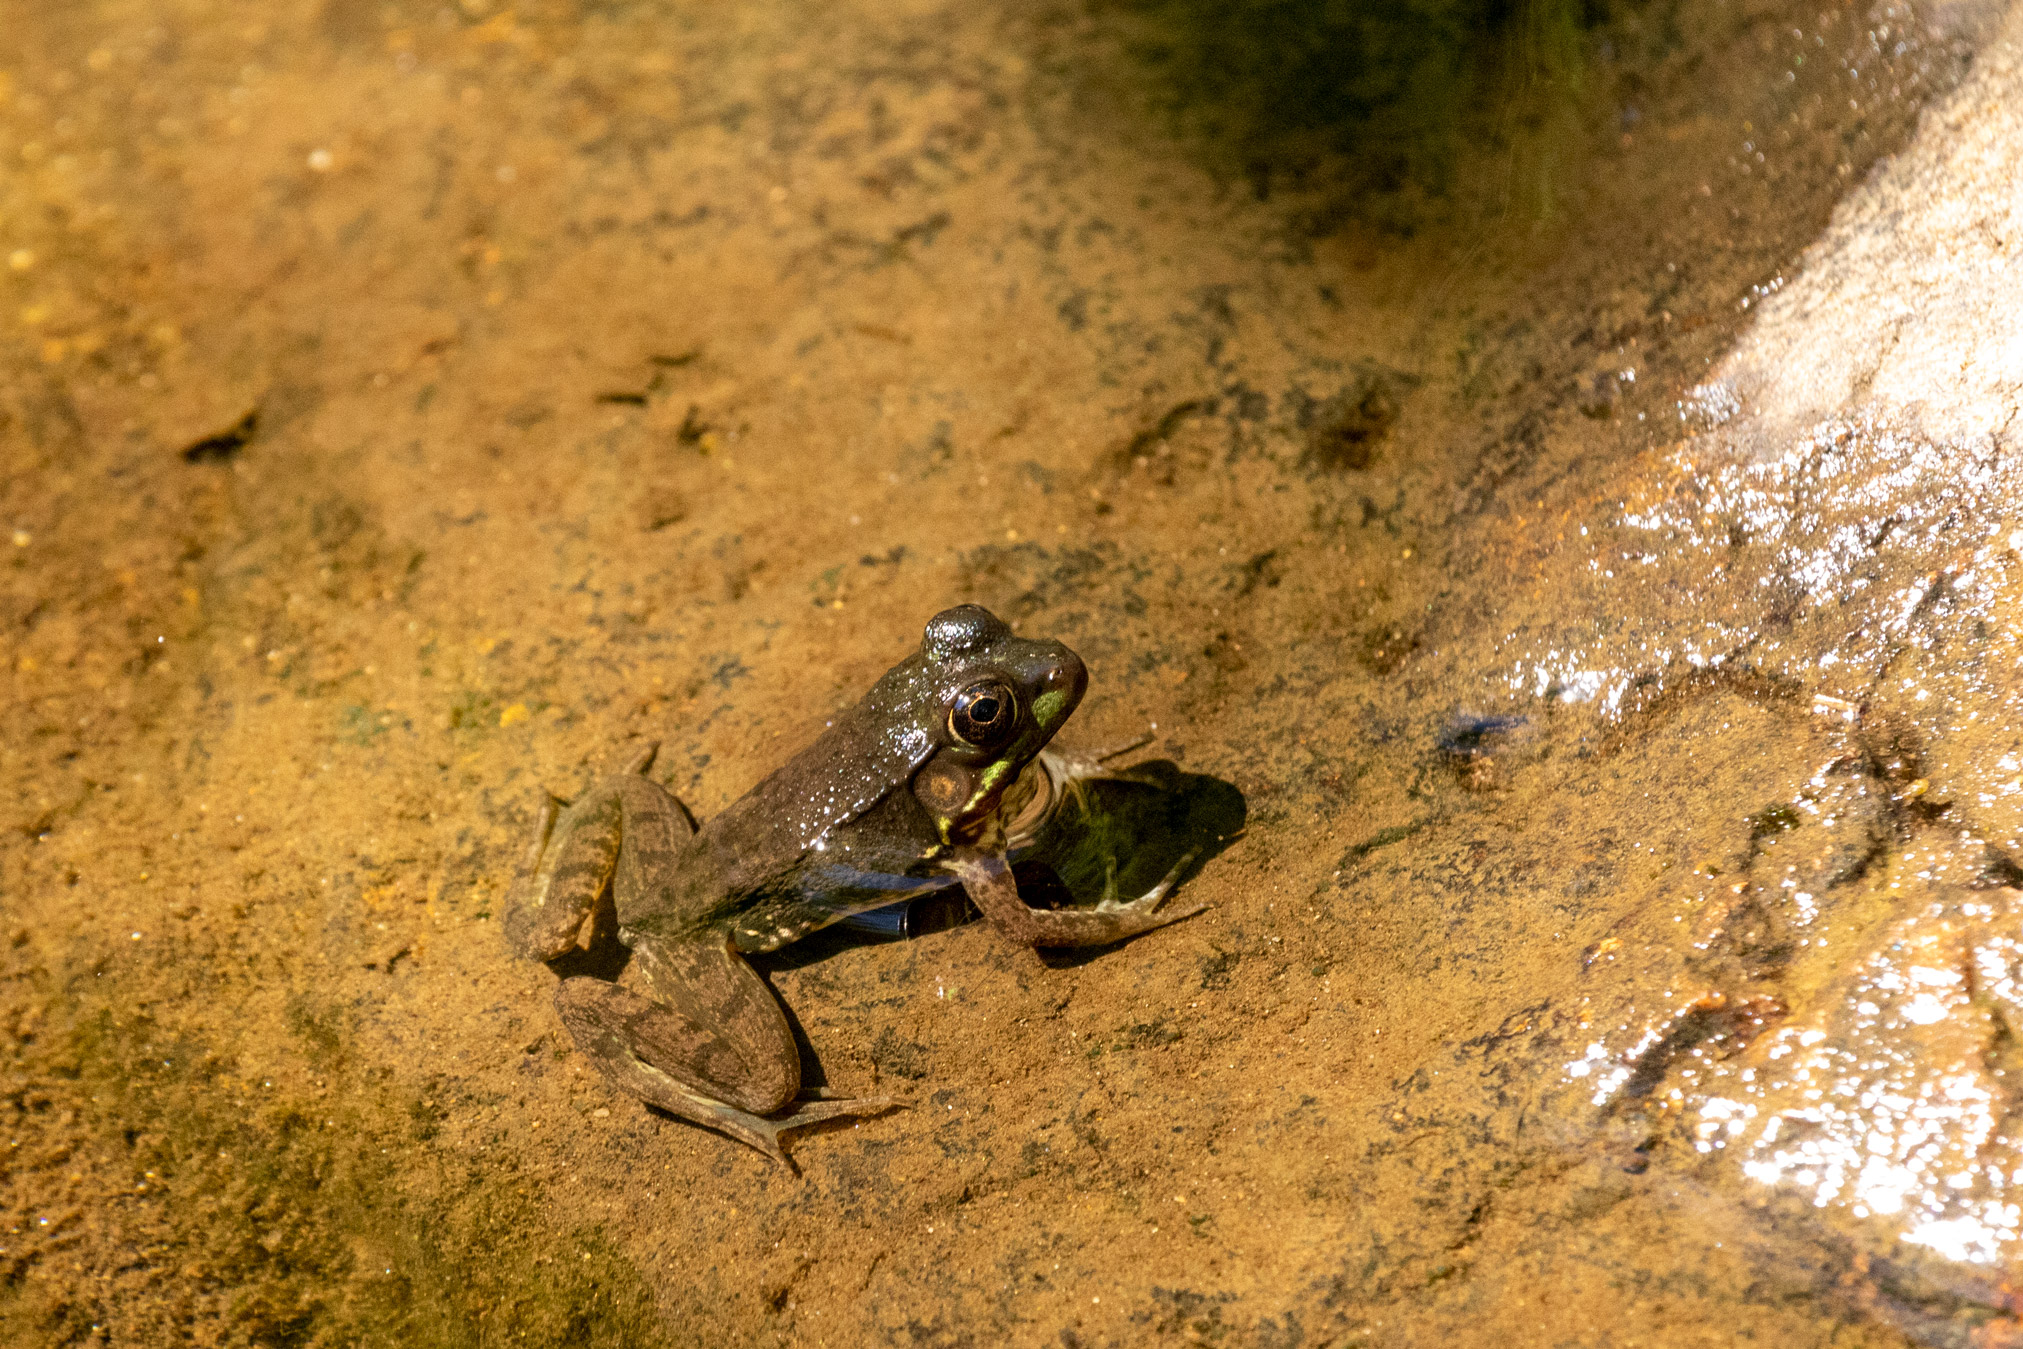 Frog sitting in shallow water